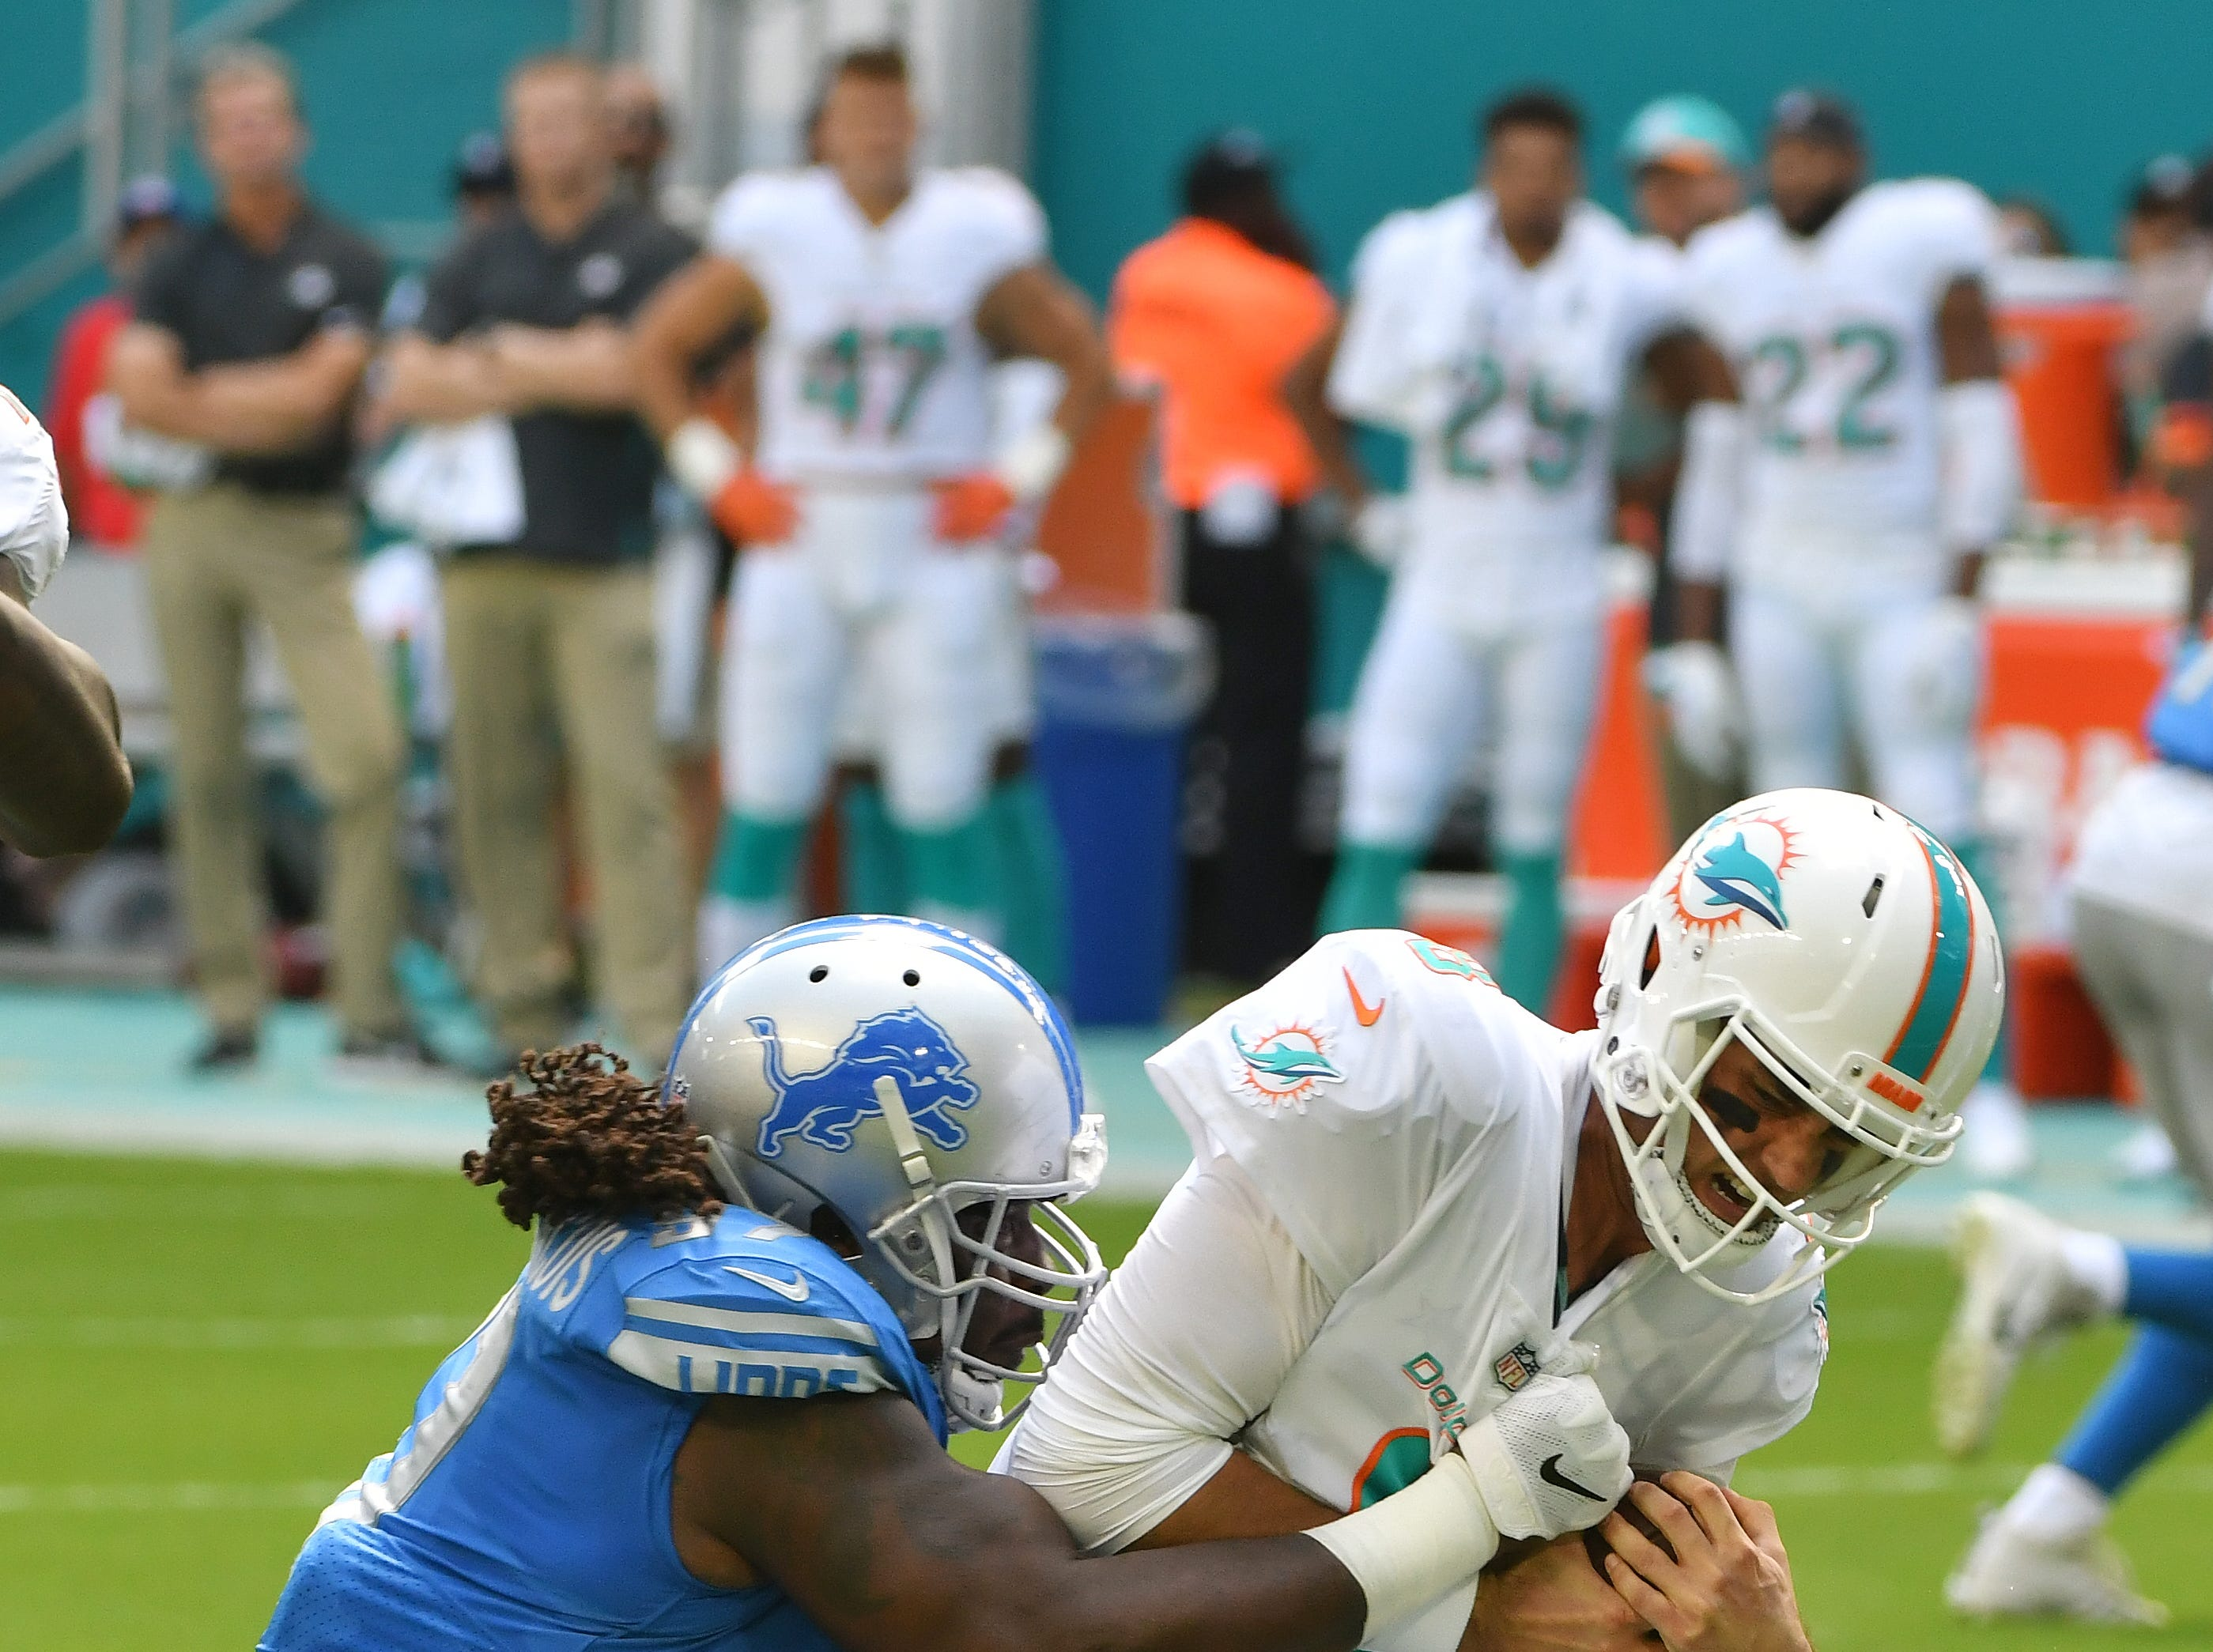 DT Ricky Jean Francois: Jean Francois has served his purpose as a one-year stopgap veteran. Outside of his two-sack showing in Miami, he's essentially played at a replacement level. Grade: C-